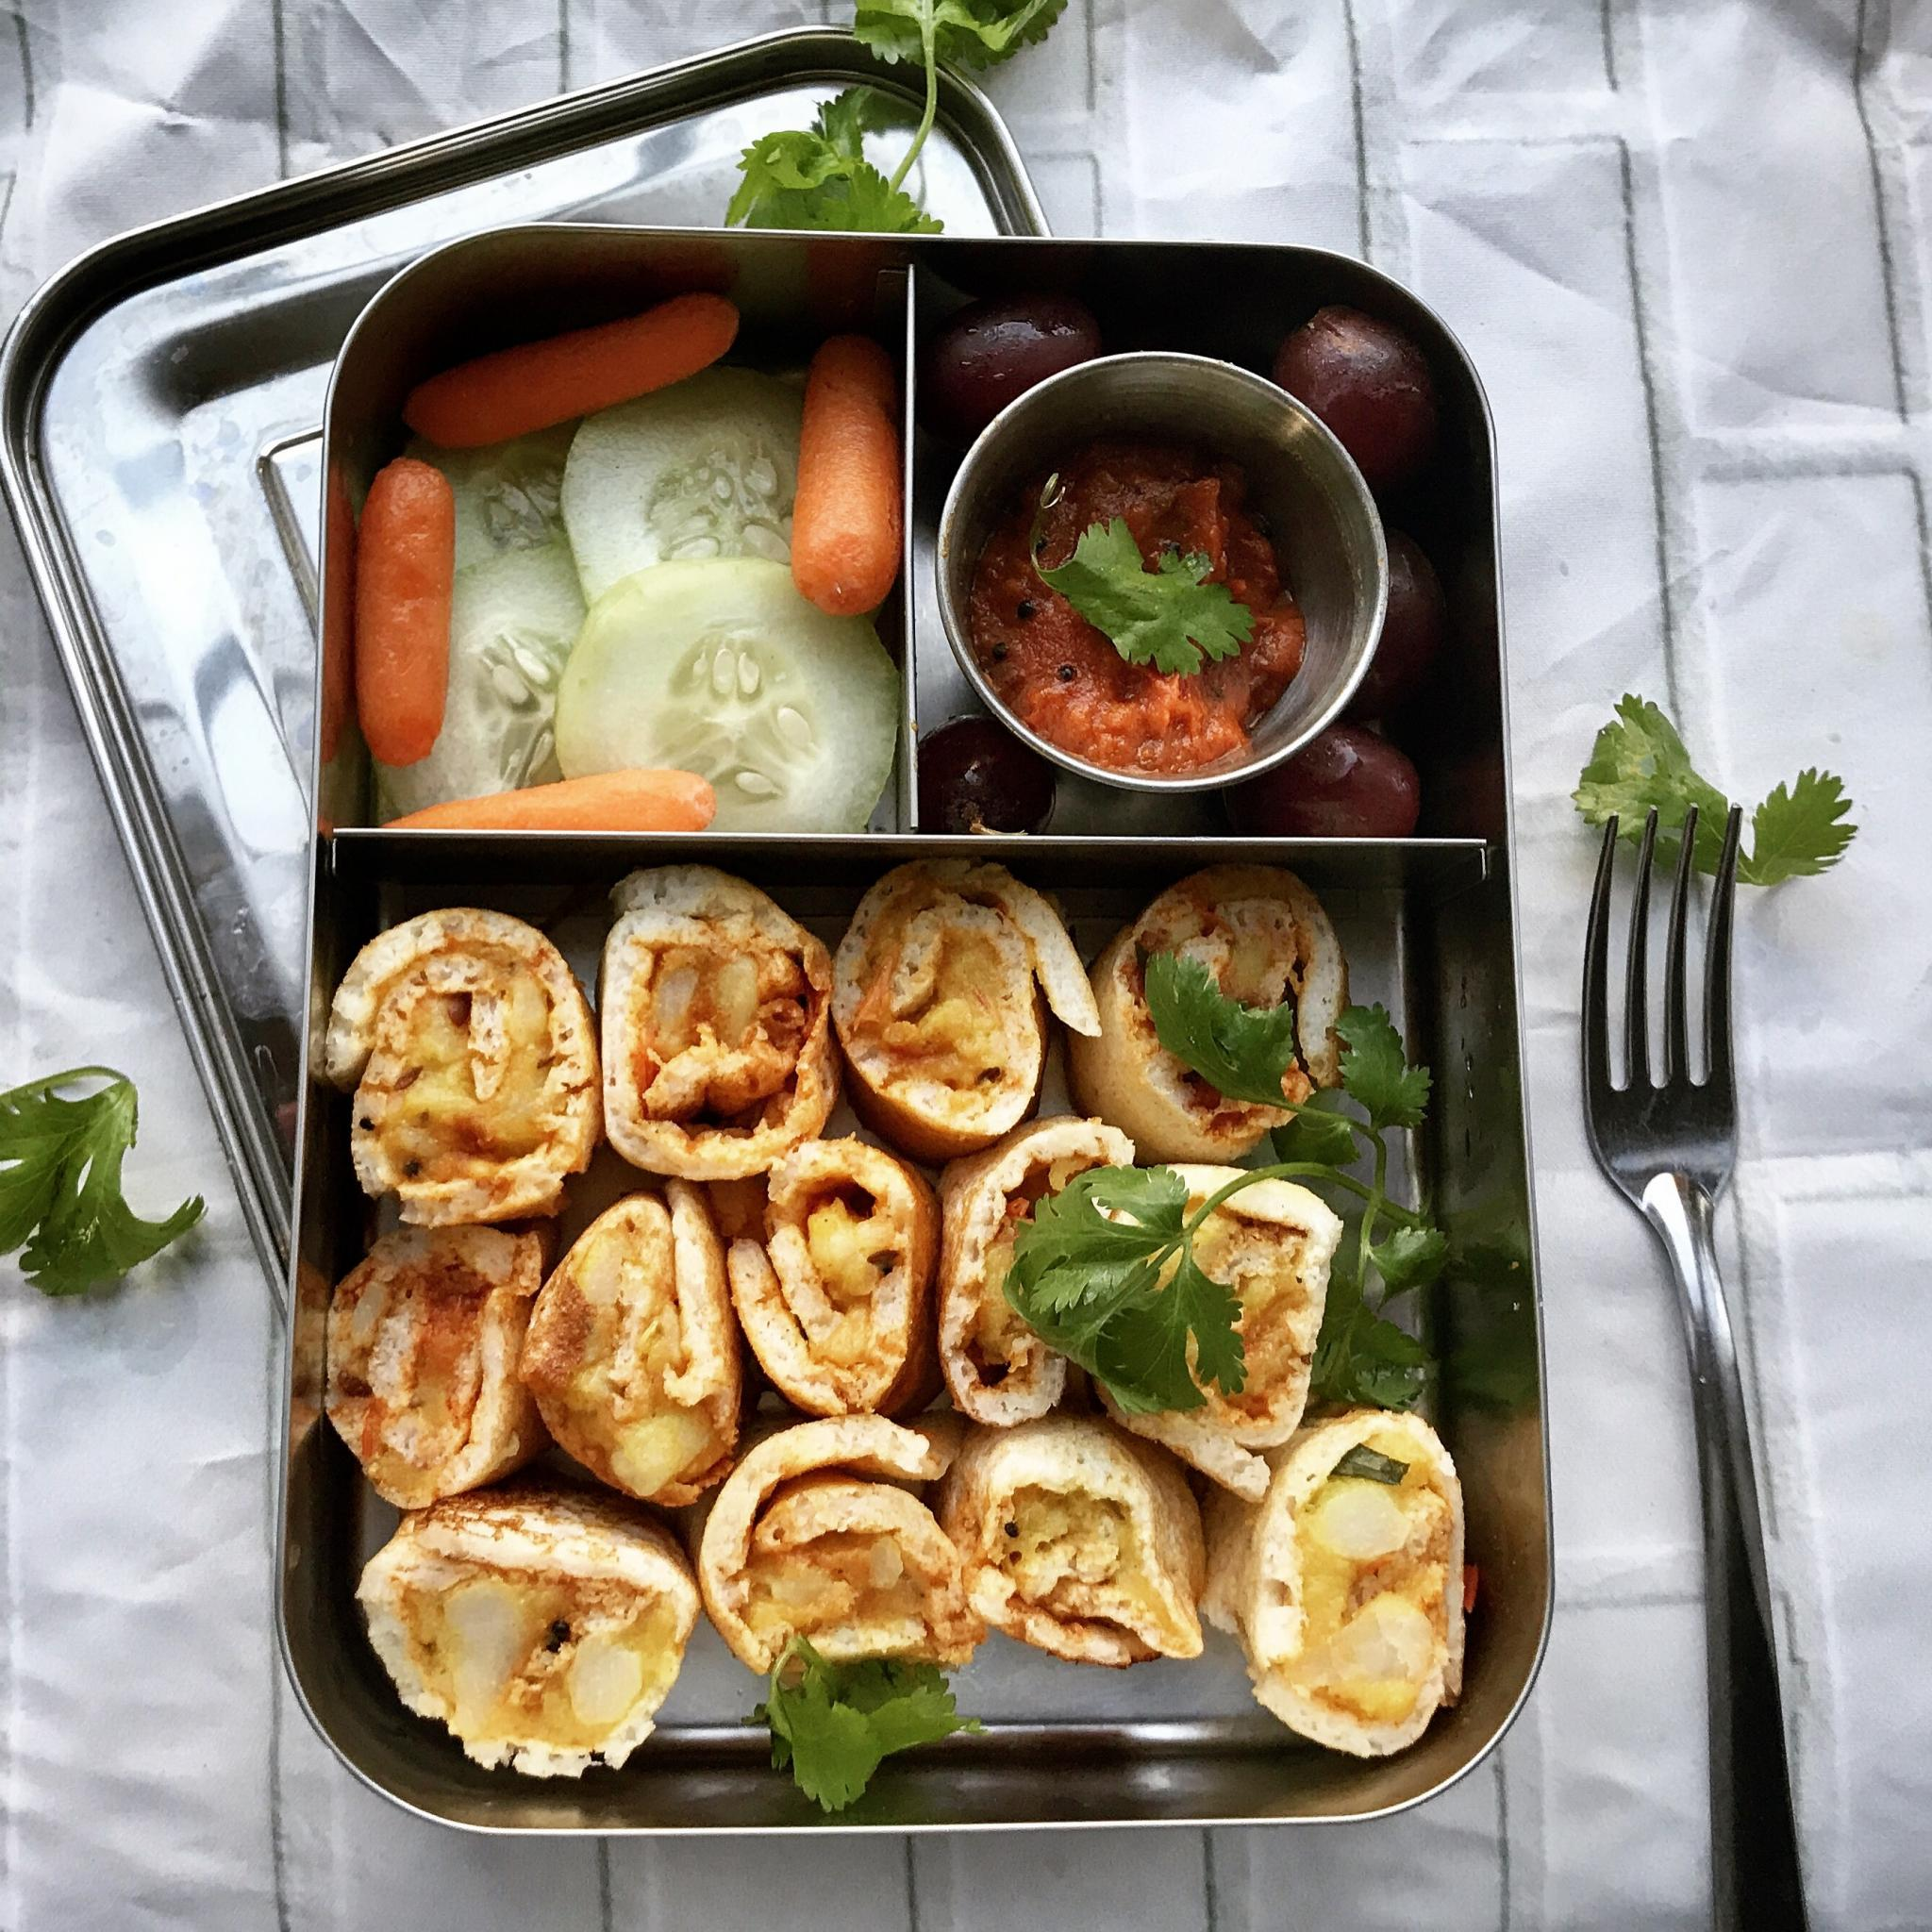 Halal certified TIFFIN restaurant at WEIL Hotel Ipoh is introducing their improvised Baked Seafood Buffet Dinner.